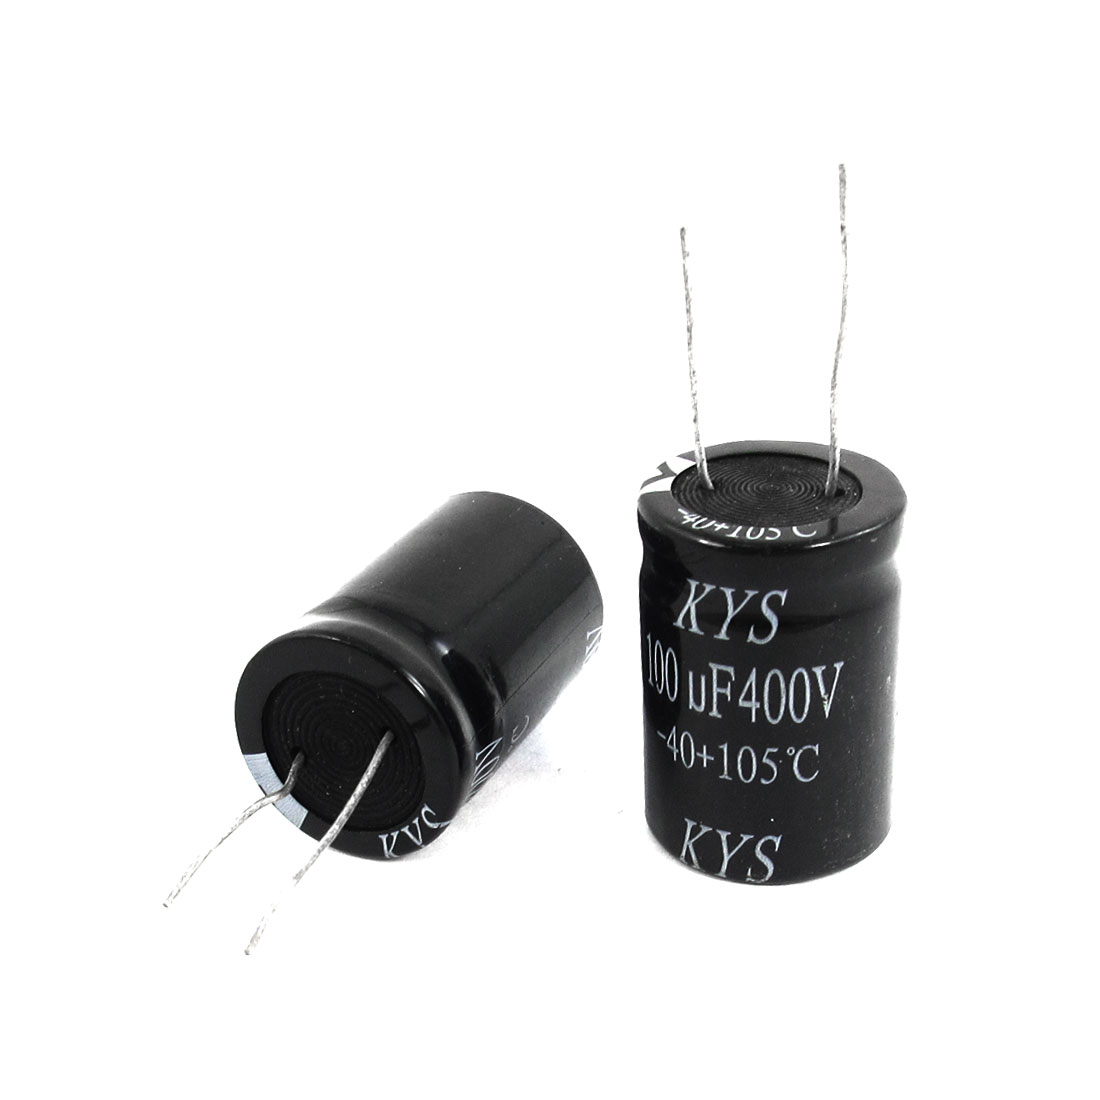 2pcs Electronic Component 100uF 400V 105C Electrolytic Capacitor 22x32mm